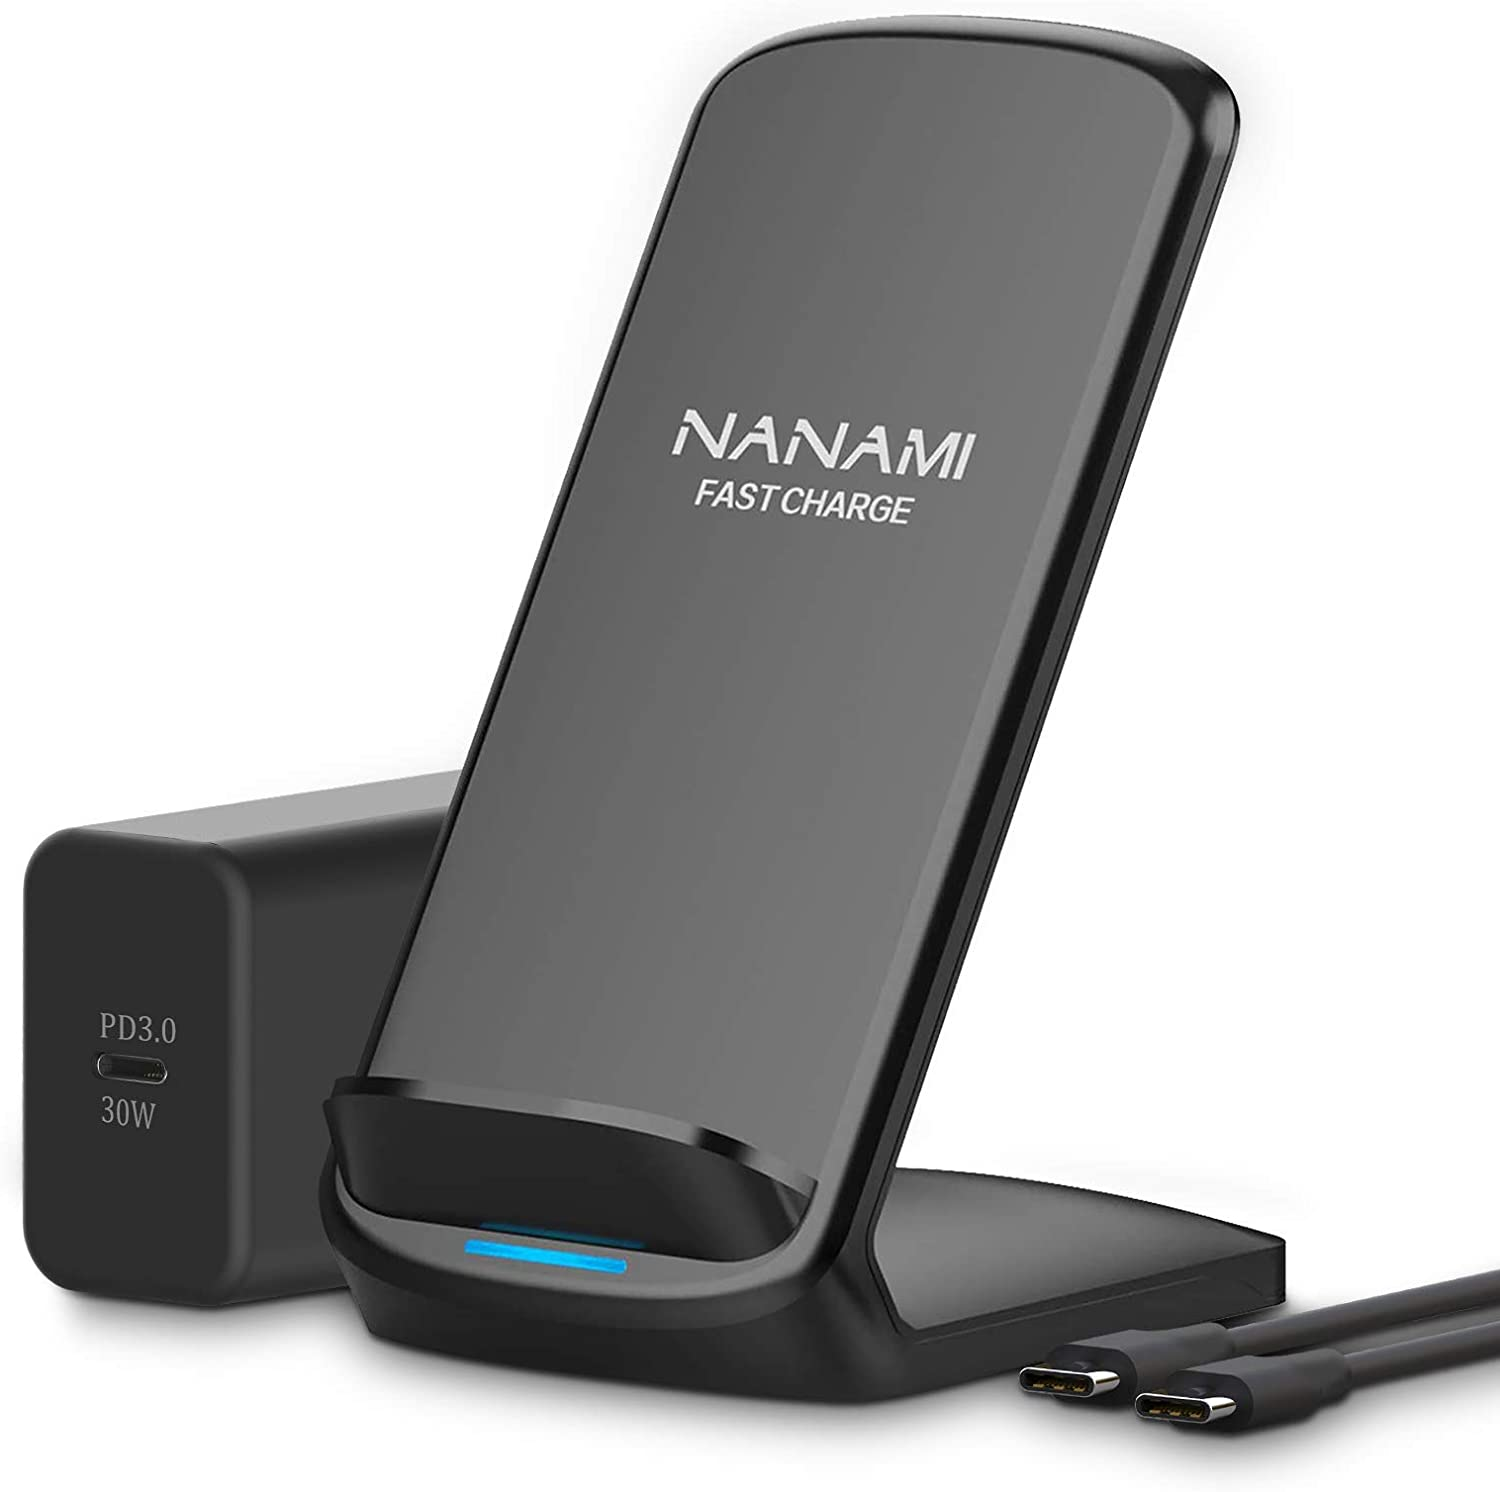 NANAMI Upgraded Wireless Charger with 30W USB C Power Adapter, Fast Charging Stand 7.5W Compatible iPhone 12/SE 2/11 Pro/XS Max/XR/X/8 Plus,10W for Samsung Galaxy S20/S10/S9/S8+/Note 20/10/9/8